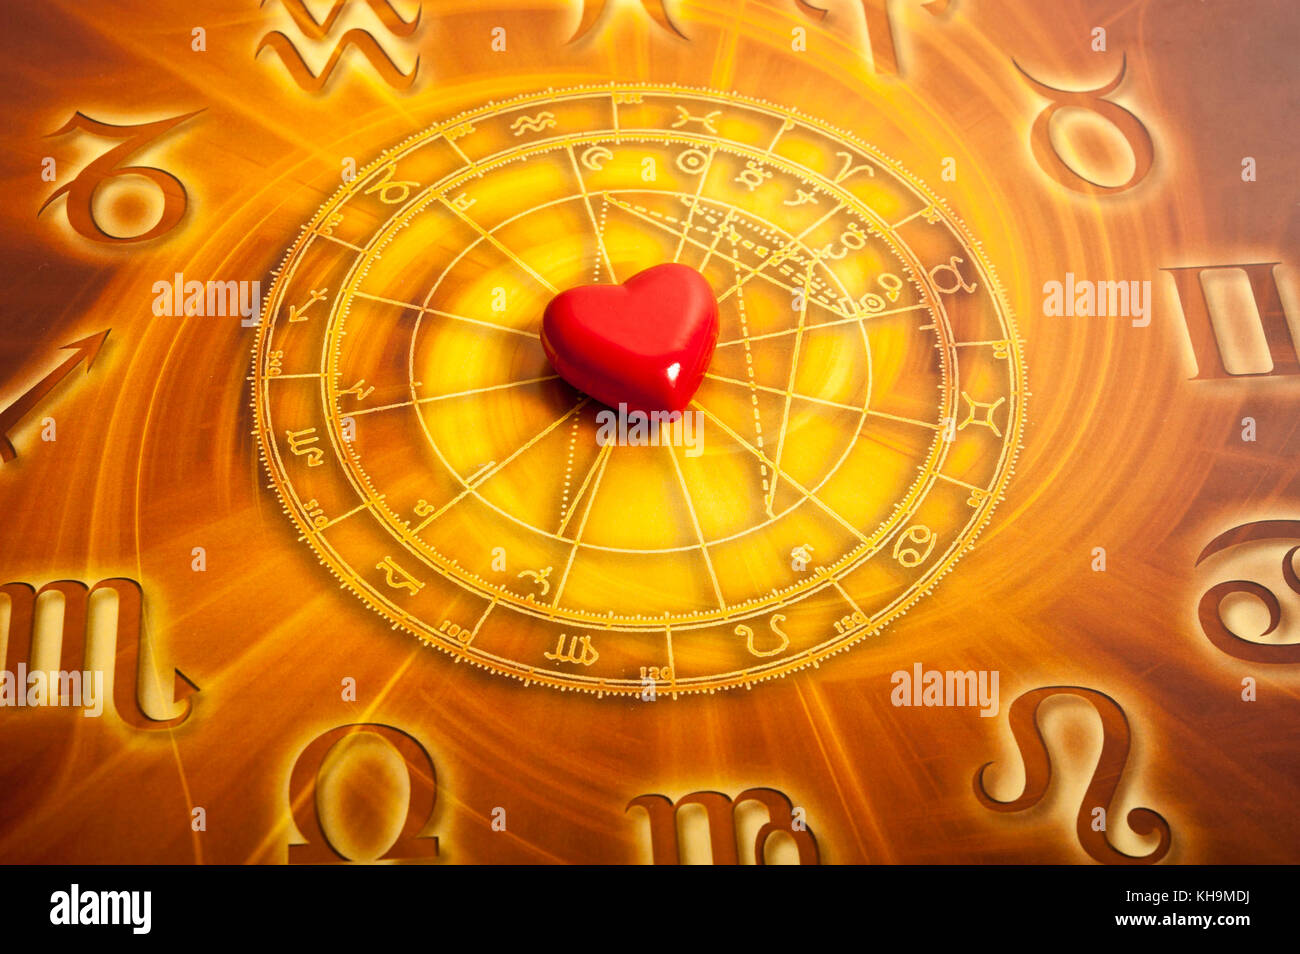 astrology chart with zodiac signs and heart, love for astrology concept - Stock Image